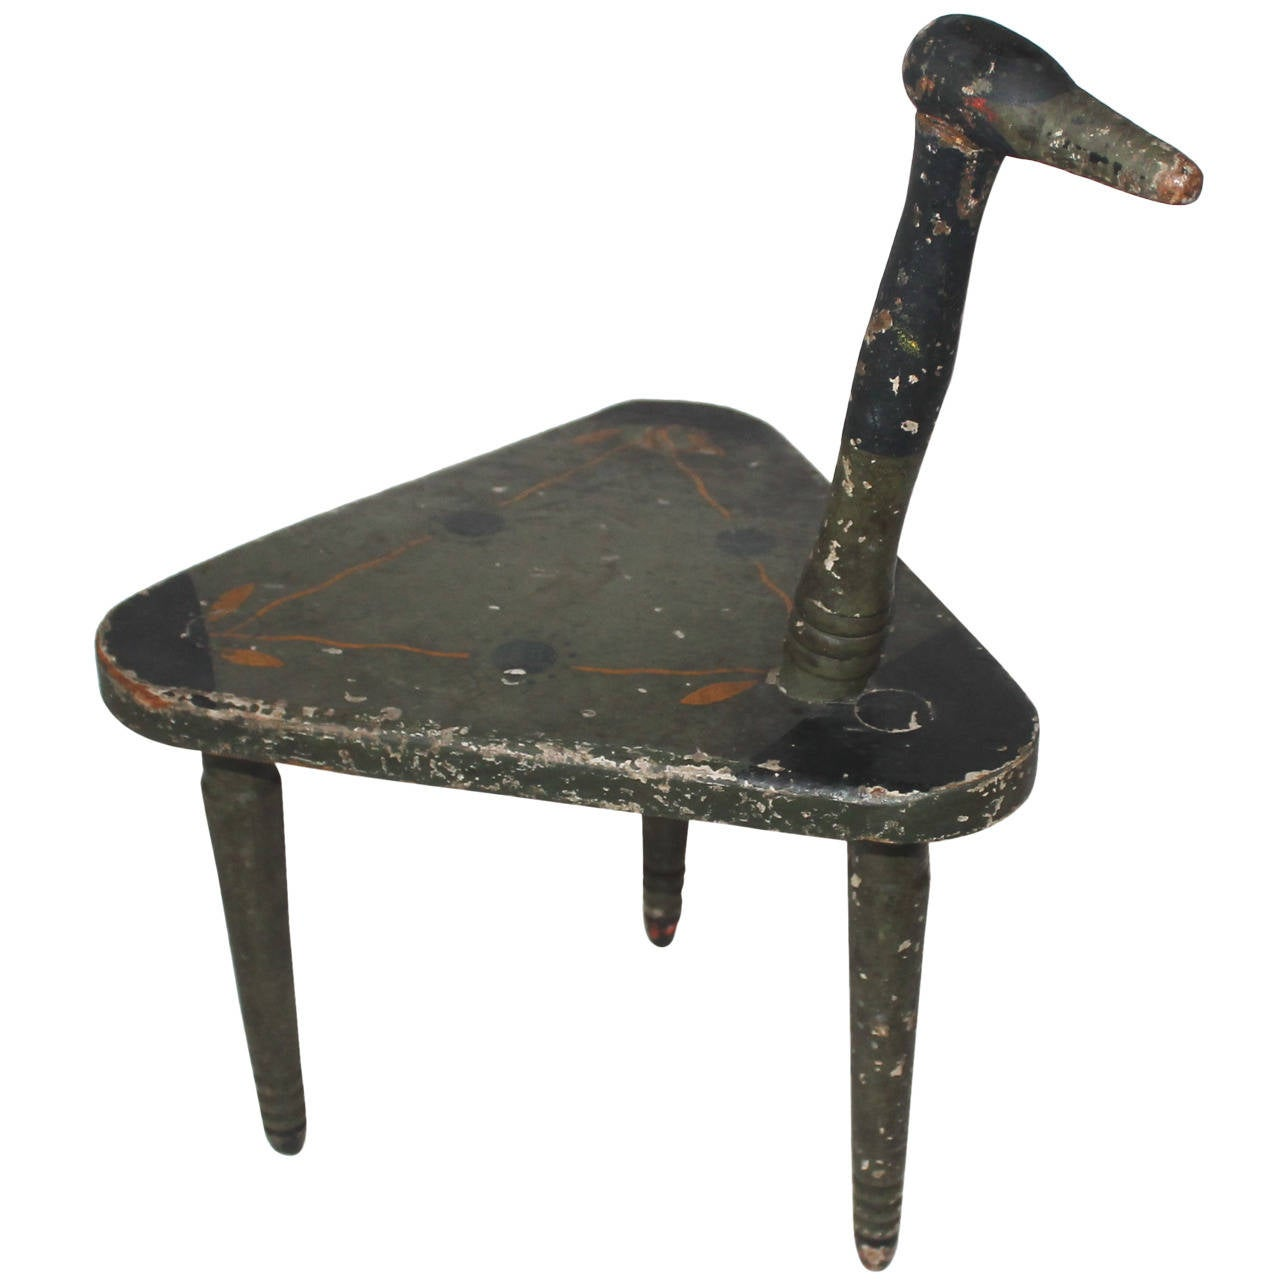 19th Century Original Painted and Carved Folk Art Chair